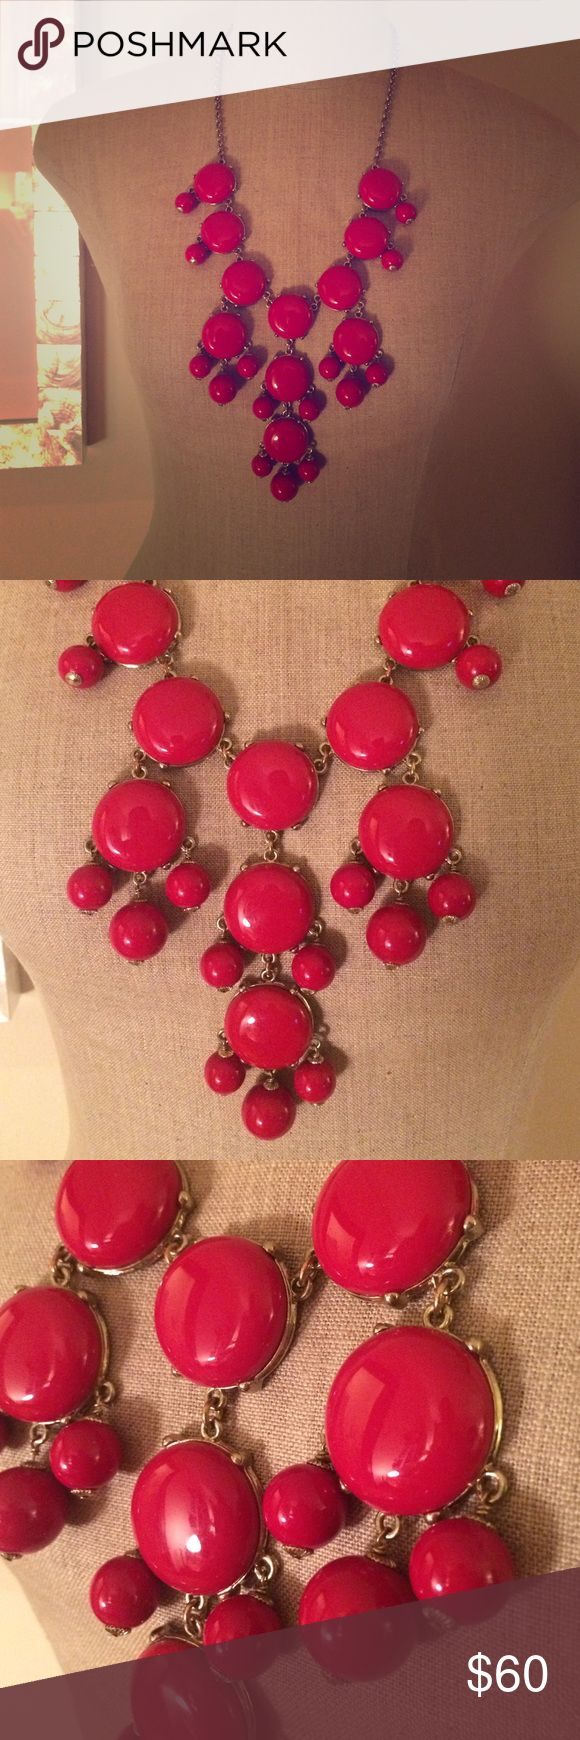 J. Crew authentic red bubble necklace Purchased at J. Crew. Very good to excellent condition. 🎈🎈🎈 J. Crew Jewelry Necklaces